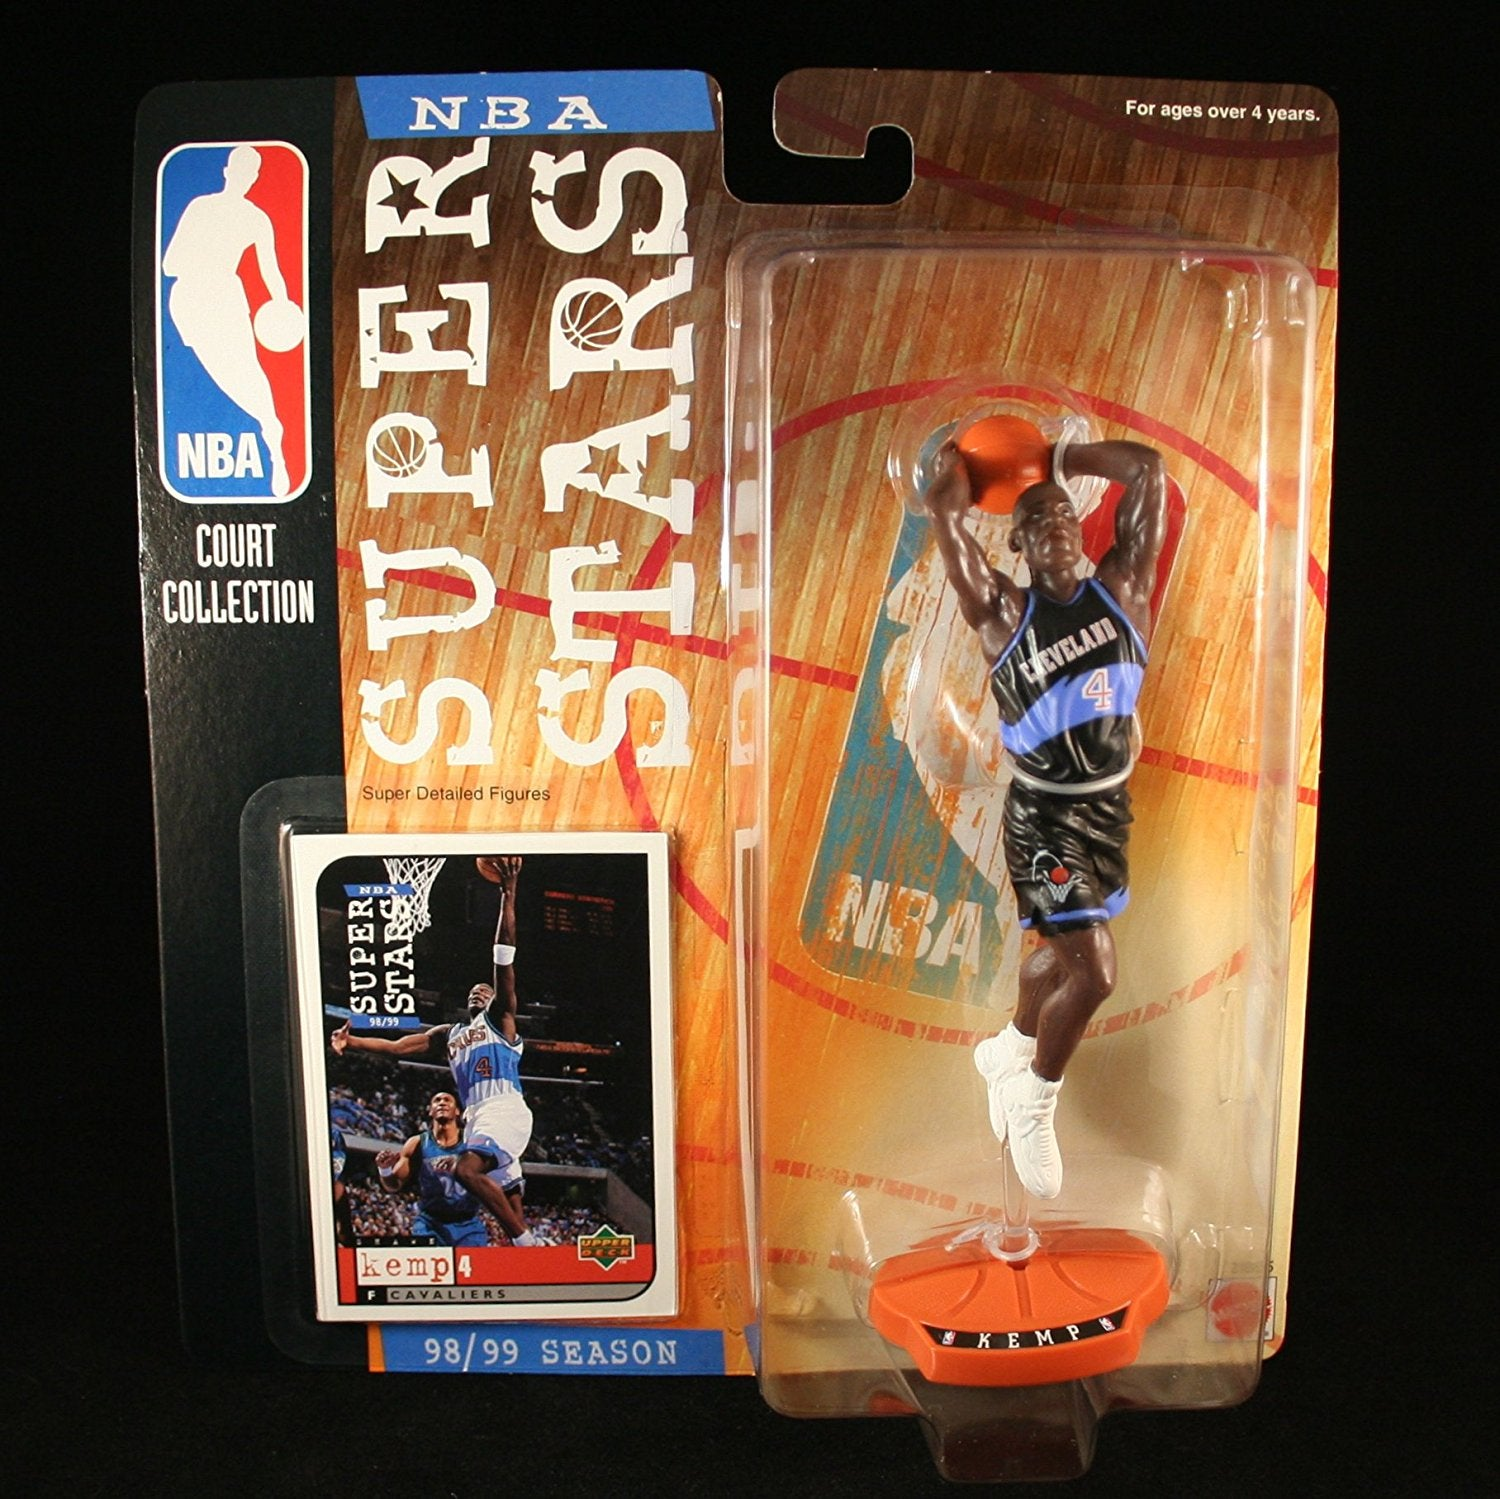 SHAWN KEMP / CLEVELAND CAVALIERS * 98/99 Season * NBA SUPER STARS Super Detailed Figure, Display Base & Exclusive Upper Deck Collector Trading Card